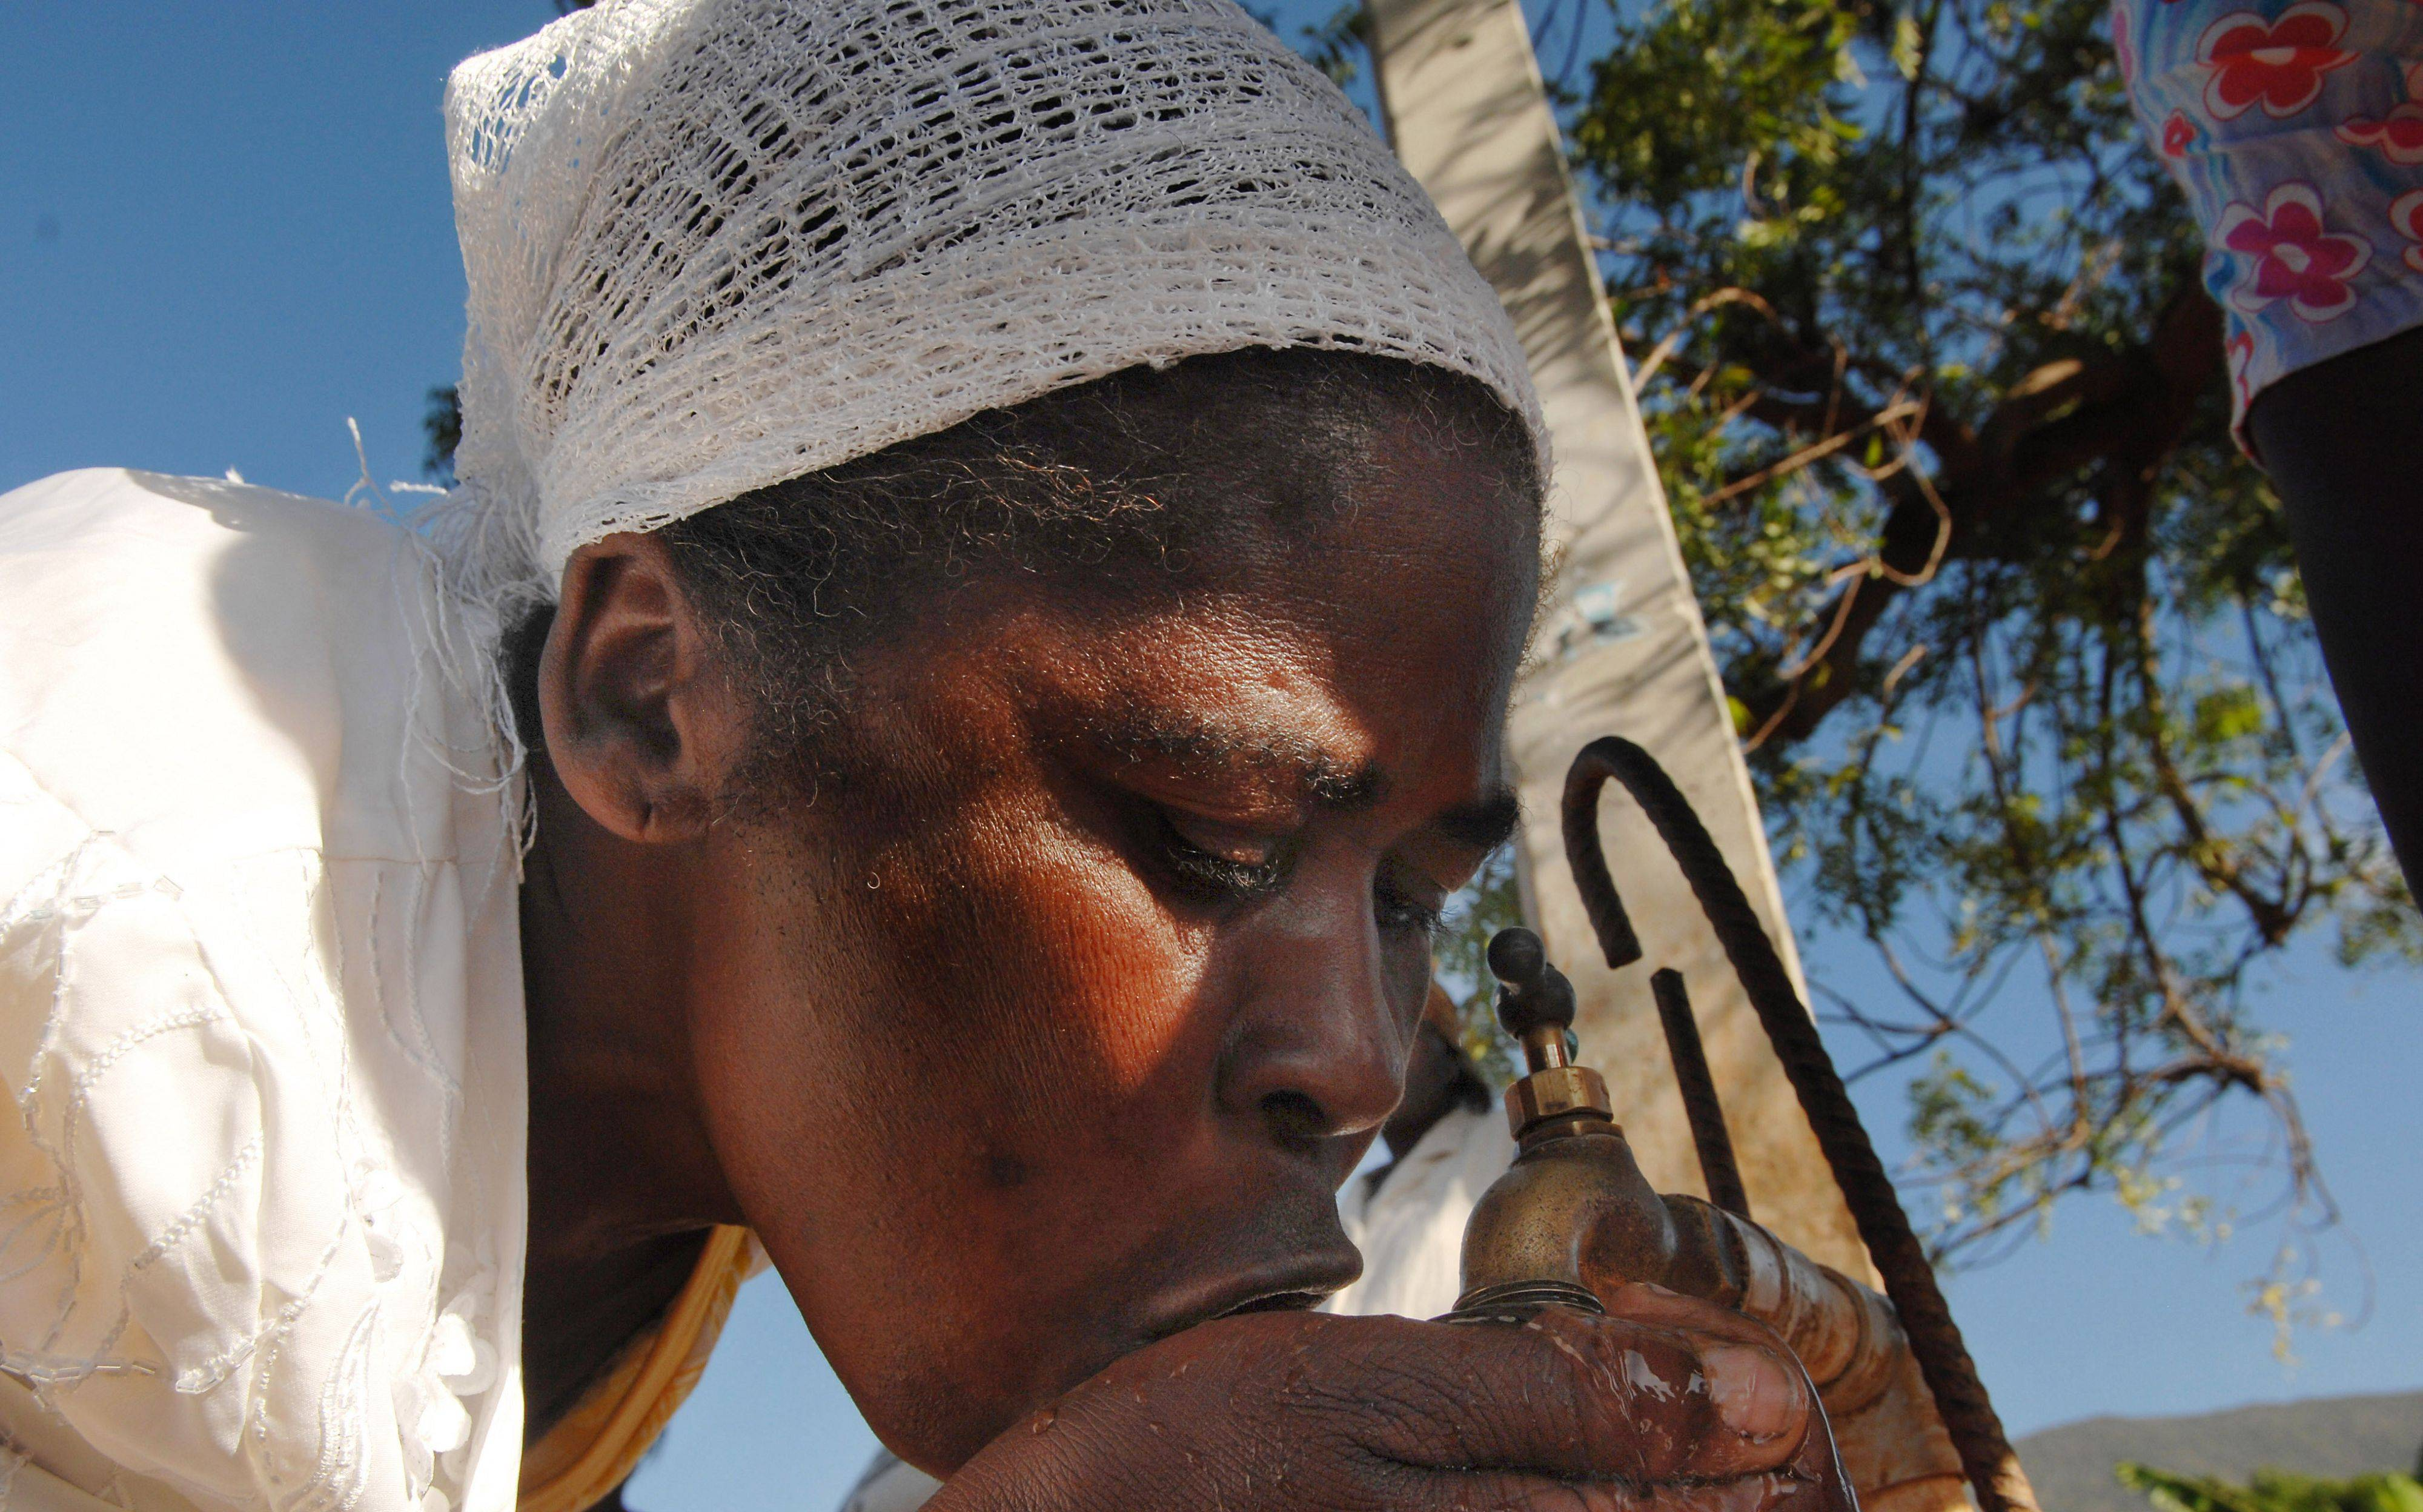 Mark Welsh/mwelsh@dailyherald.comA Haitian woman drinks from a public well in Jacmel, Haiti, south of Port-au-Prince. The well tested positive for E. coli.